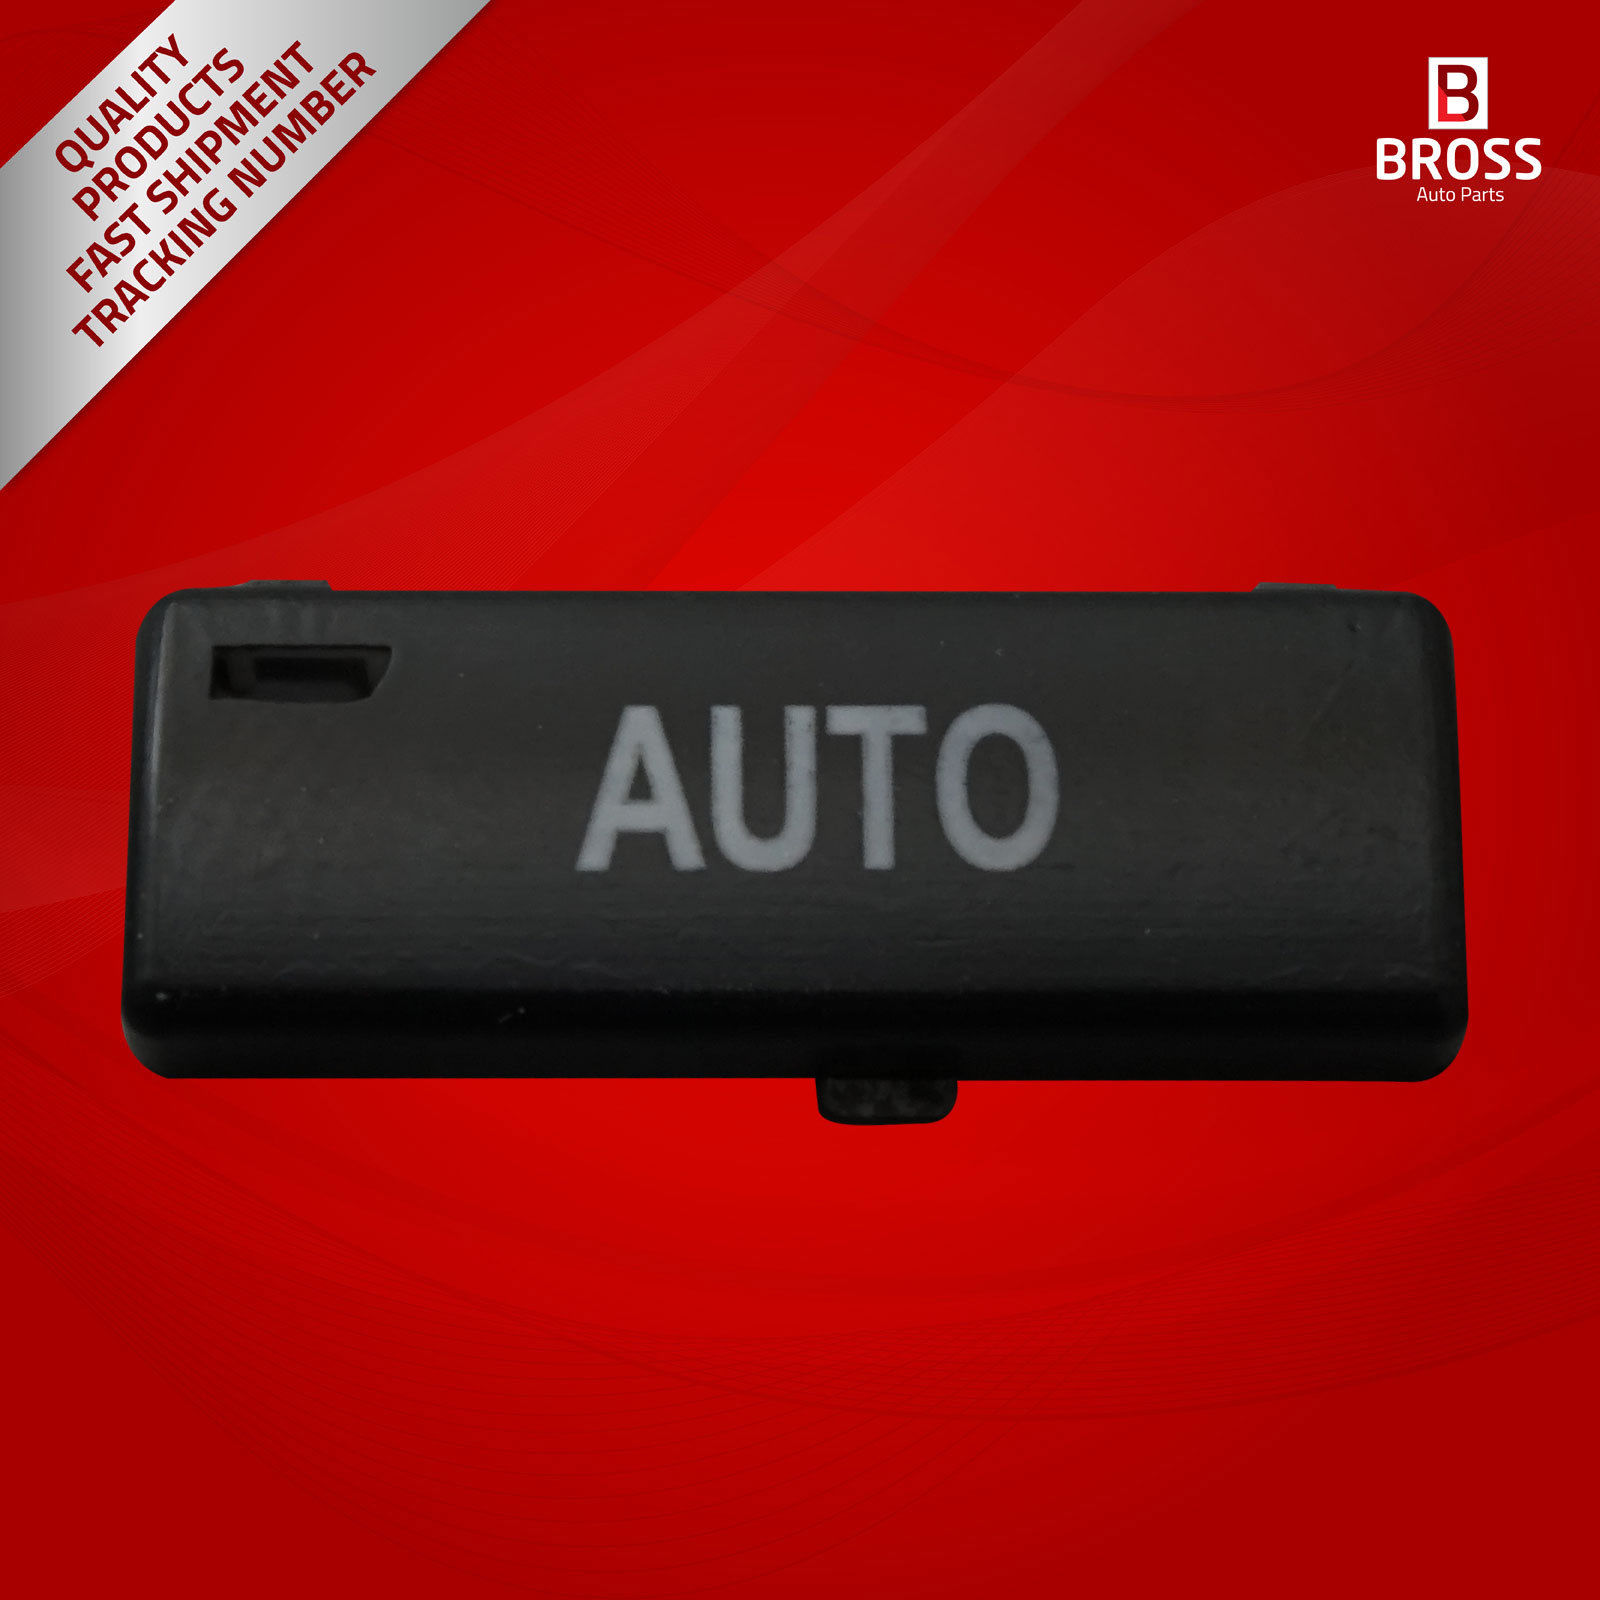 BDP88-4 1 Piece Heater Climate Control Air Conditioning Switch Button Cover #4 For 5 Series X5 E53 2000- 2007 E39 1995-2003